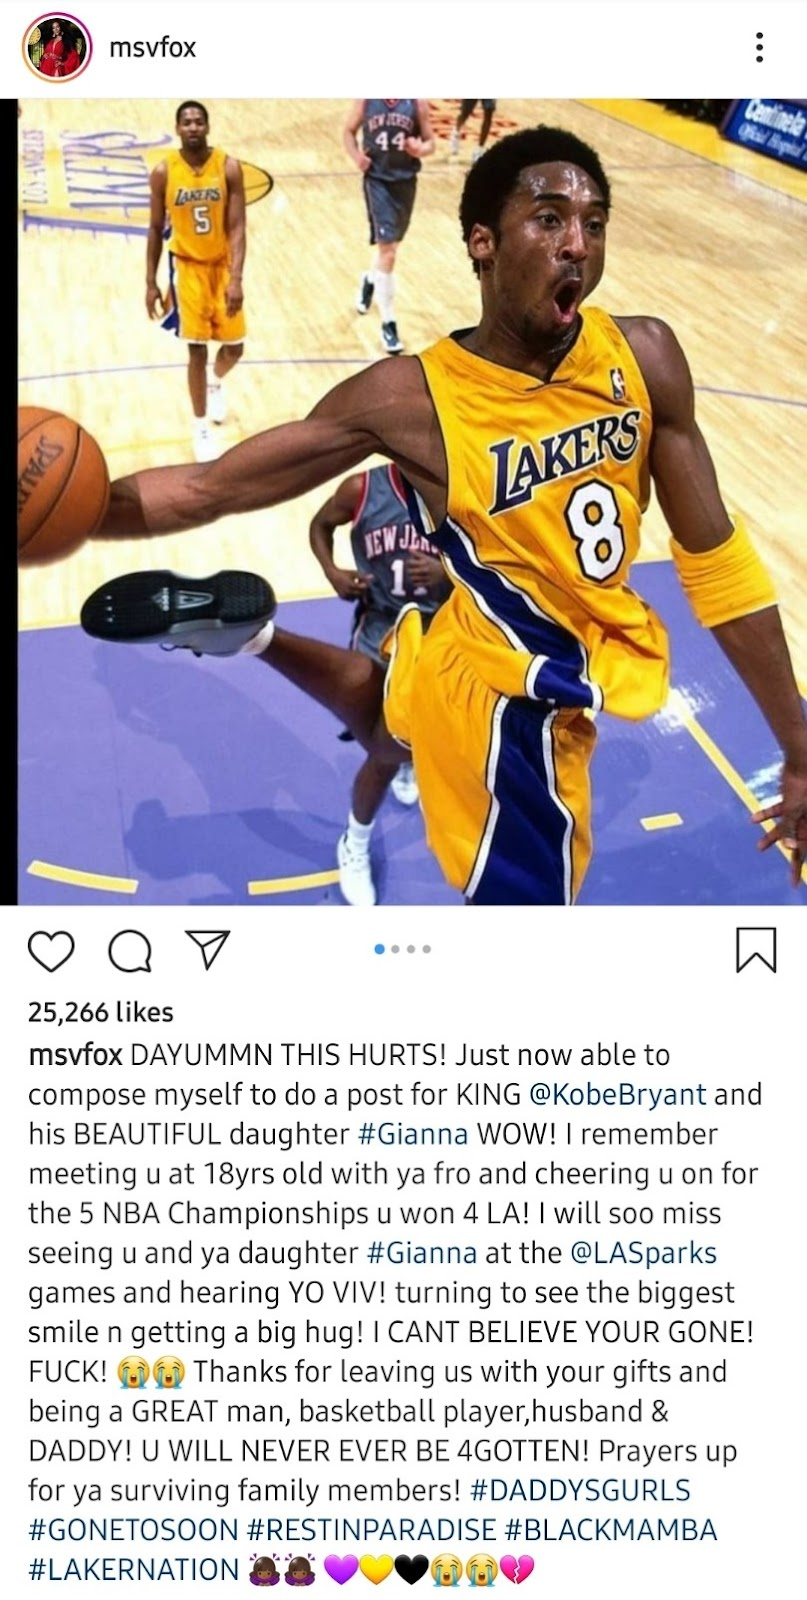 msvfox 25,266 likes o msvfox DAYUMMN THIS HURTS! Just now able to compose myself to do a post for KING @KobeBryant and his BEAUTIFUL daughter #Gianna WOW! I remember meeting u at 18yrs old with ya fro and cheering u on for the 5 NBA Championships u won 4 LA! I will soo miss seeing u and ya daughter #Gianna at the @LASparks games and hearing YO VIV! turning to see the biggest smile n getting a big hug! I CANT BELIEVE YOUR GONE! Thanks for leaving us with your gifts and FUCK! being a GREAT man, basketball player,husband & DADDY! U WILL NEVER EVER BE 4GOTTEN! Prayers up for ya surviving family members! #DADDYSGURLS #GONETOSOON #RESTINPARADISE #BLACKMAMBA #LAKERNATION 00